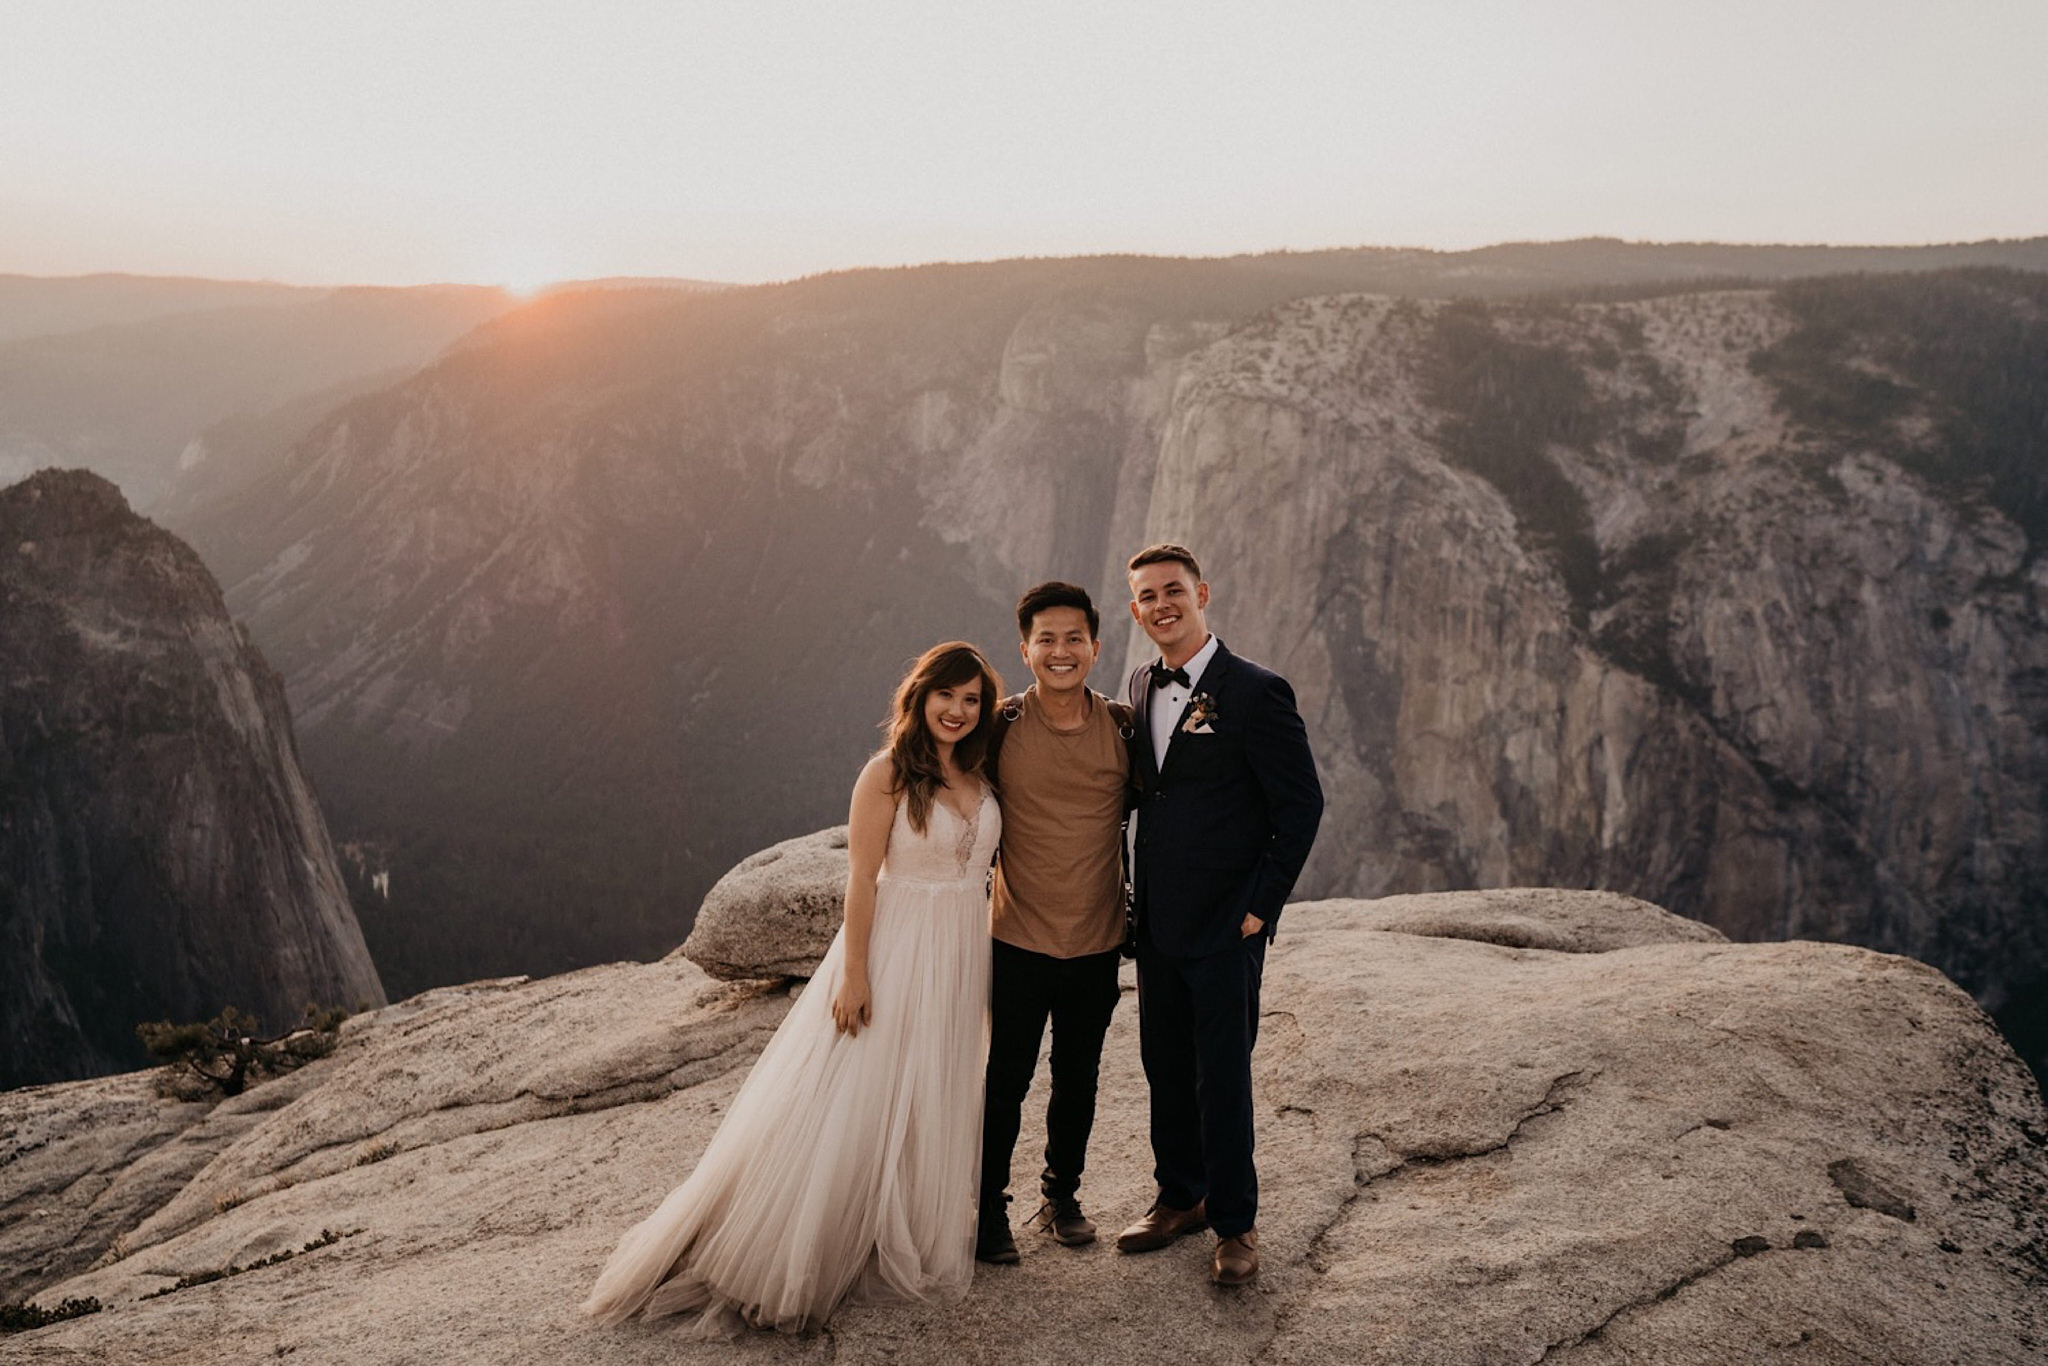 Henry Tieu Photography and bride and groom kissing him at Yosemite National Park during their wedding and elopement